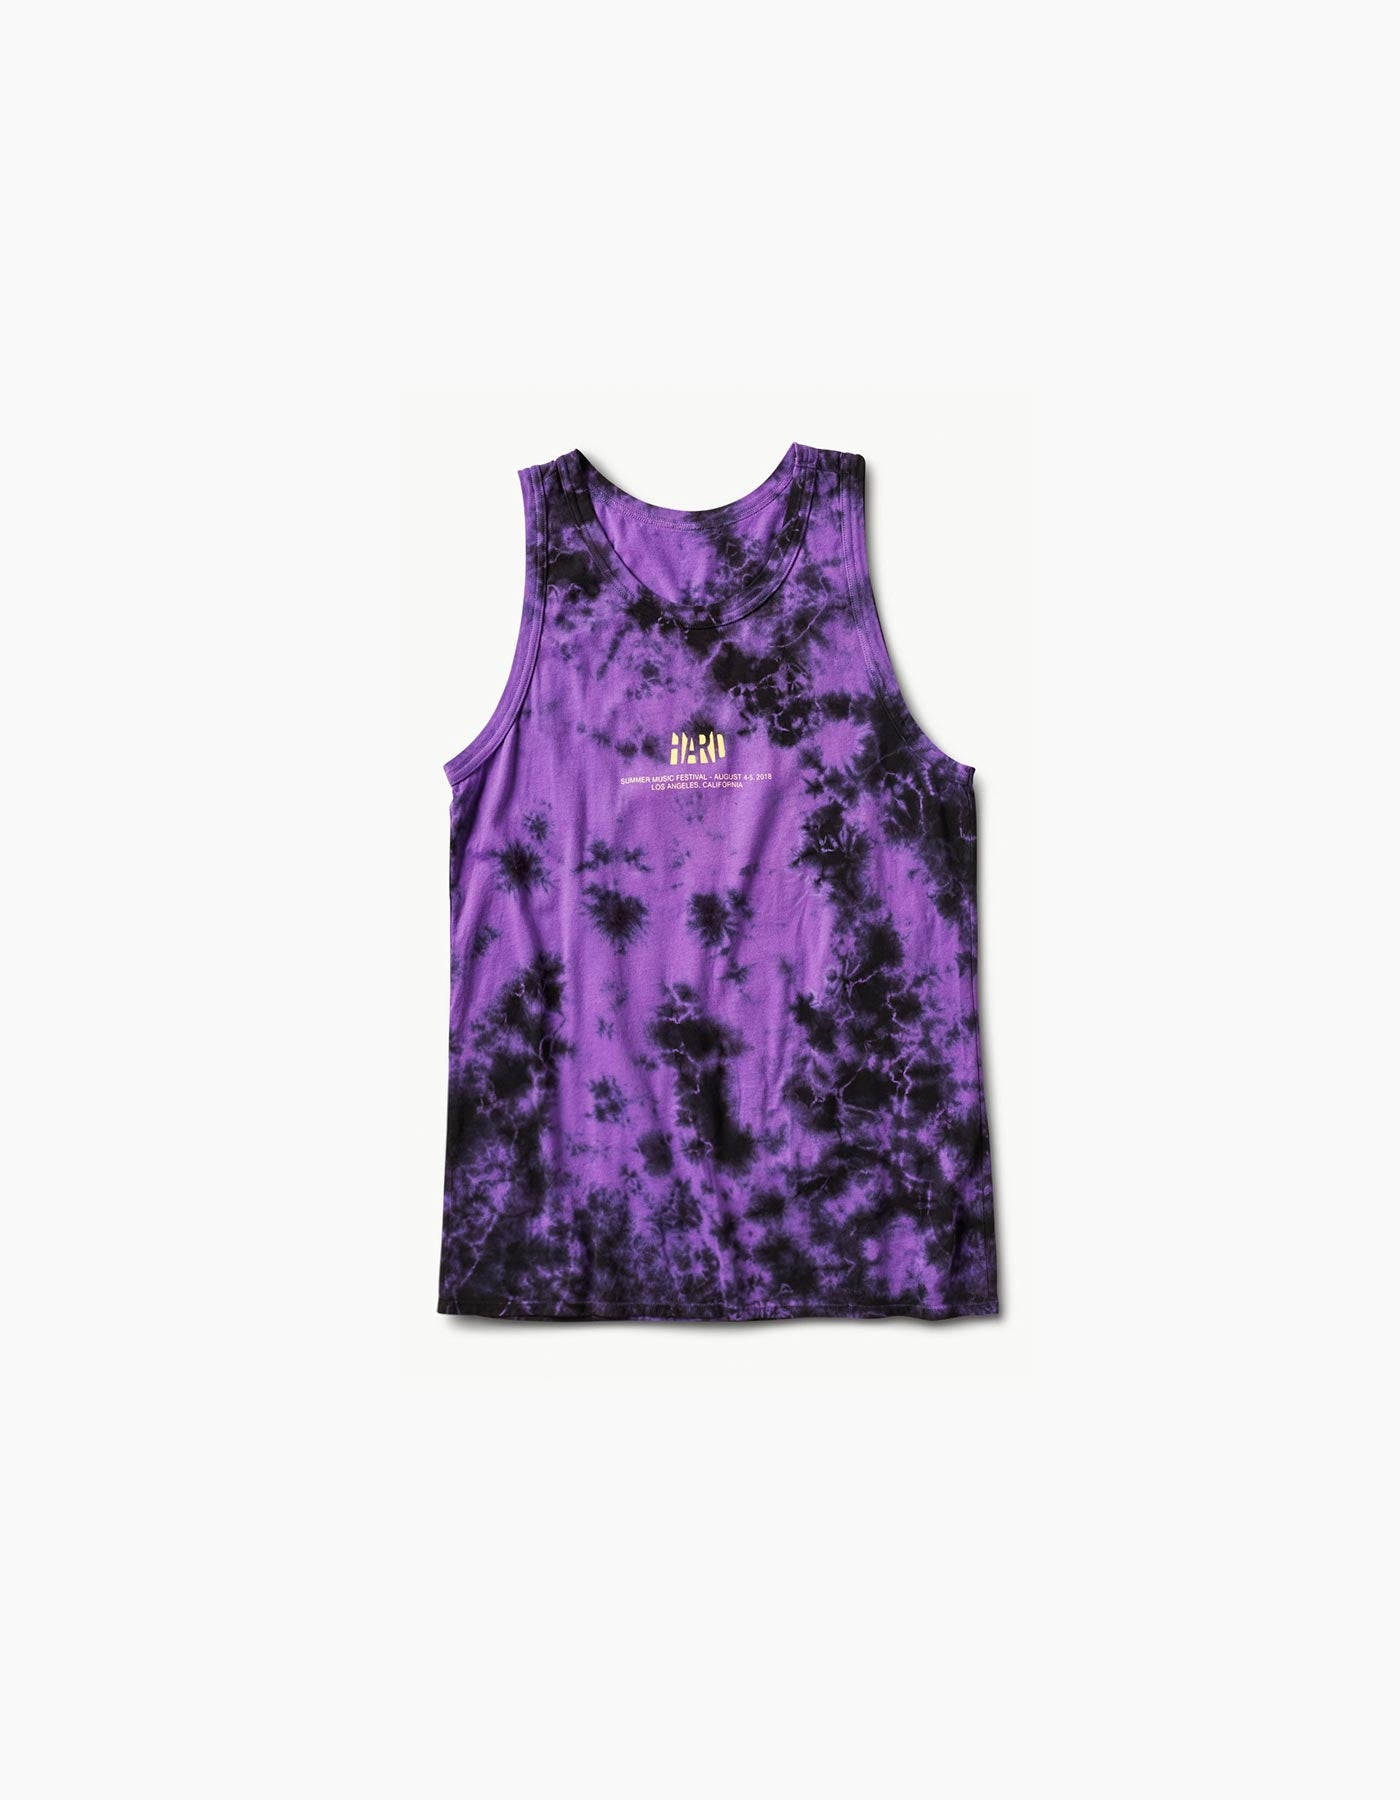 HARD - Summer Lil Type Tie Dye Tank